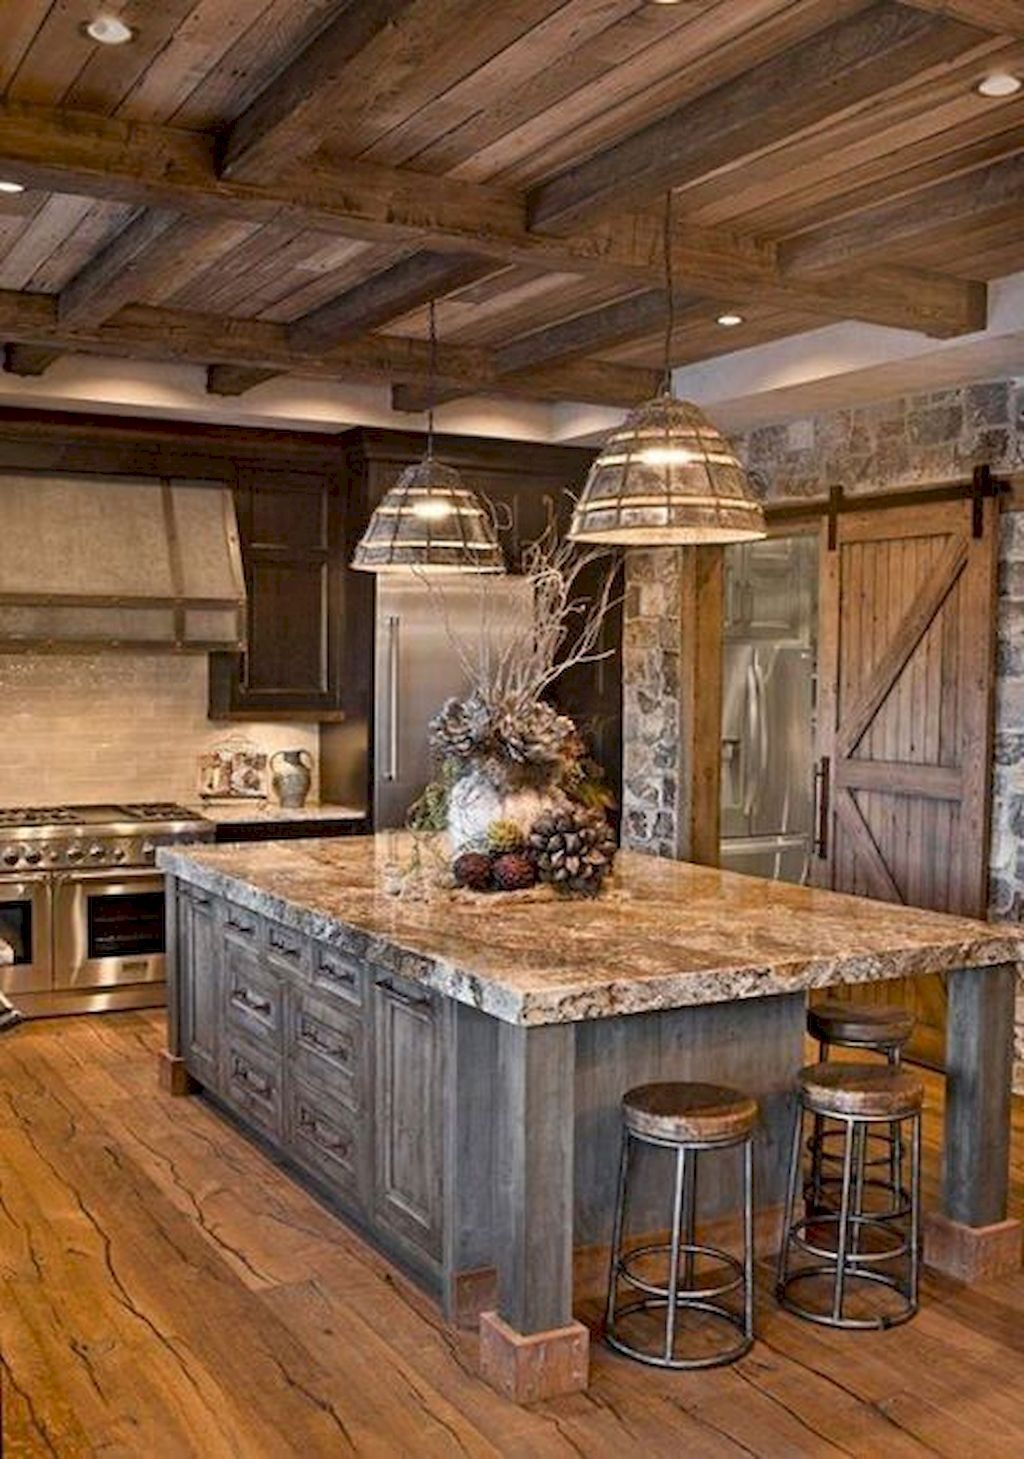 70 Modern Rustic Farmhouse Kitchen Cabinets Ideas | Rustic ... on Rustic Farmhouse Kitchen  id=46027